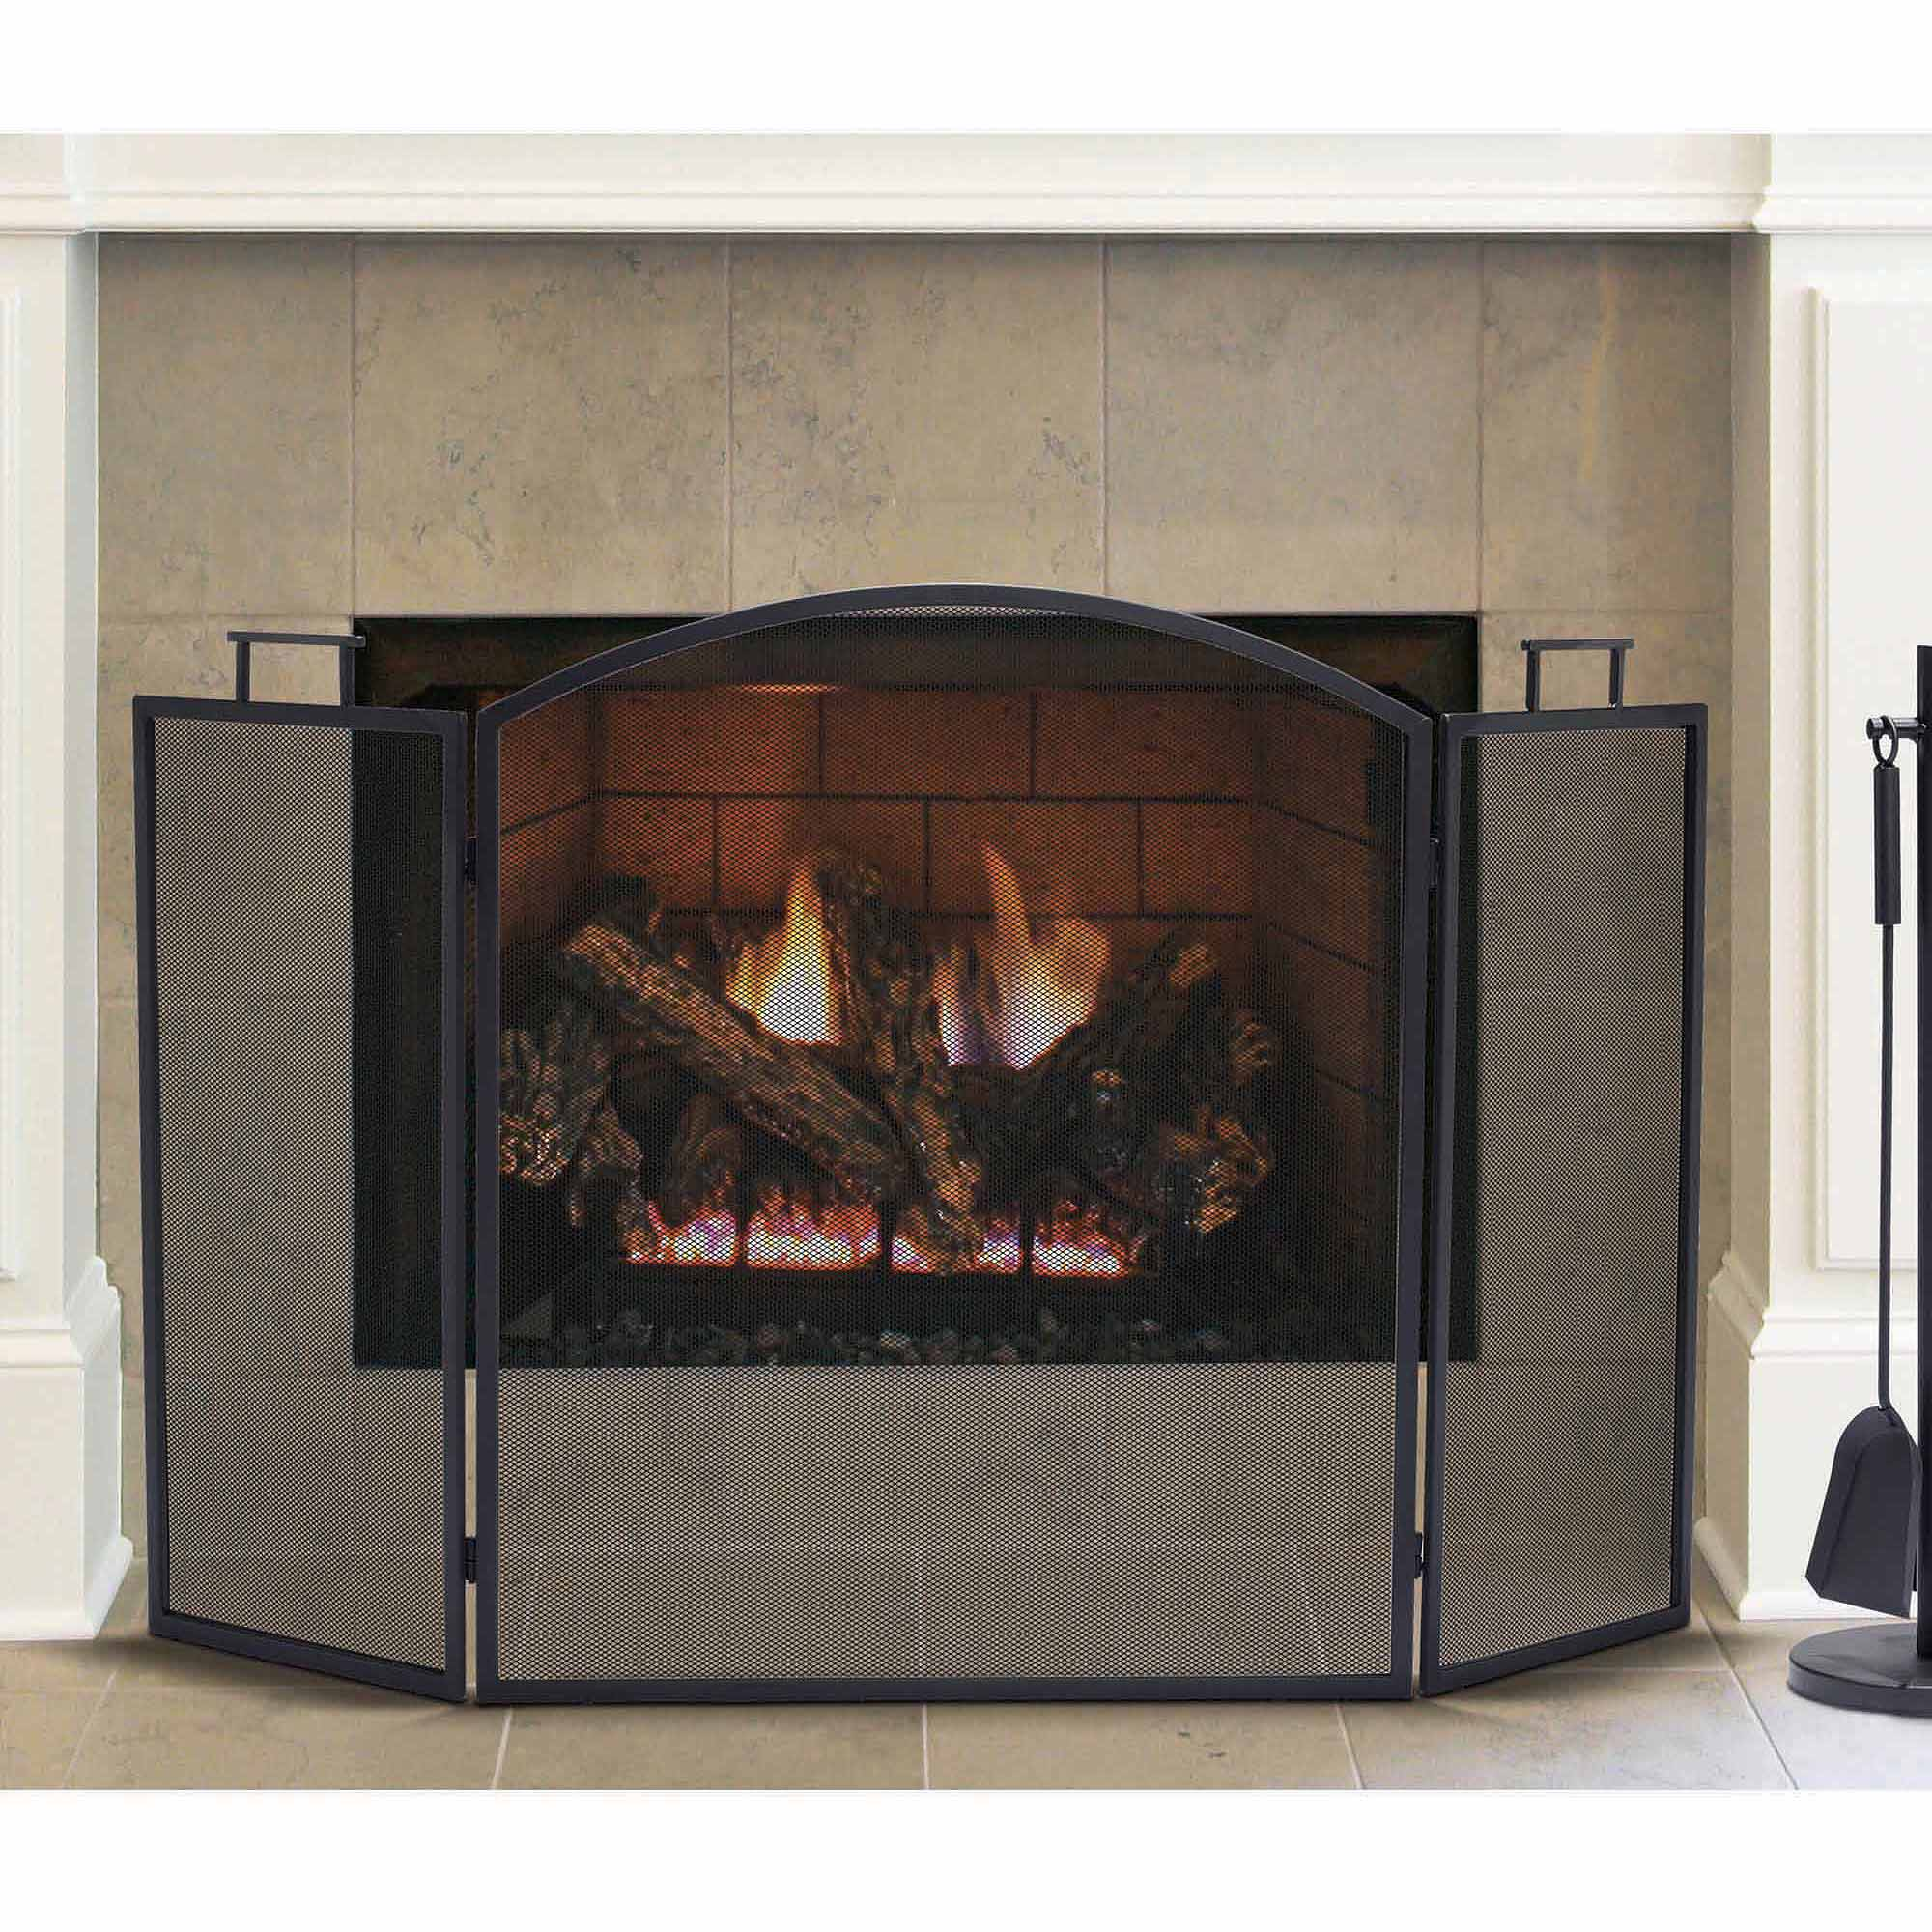 Pleasant Hearth Classic Fireplace Screen, Black